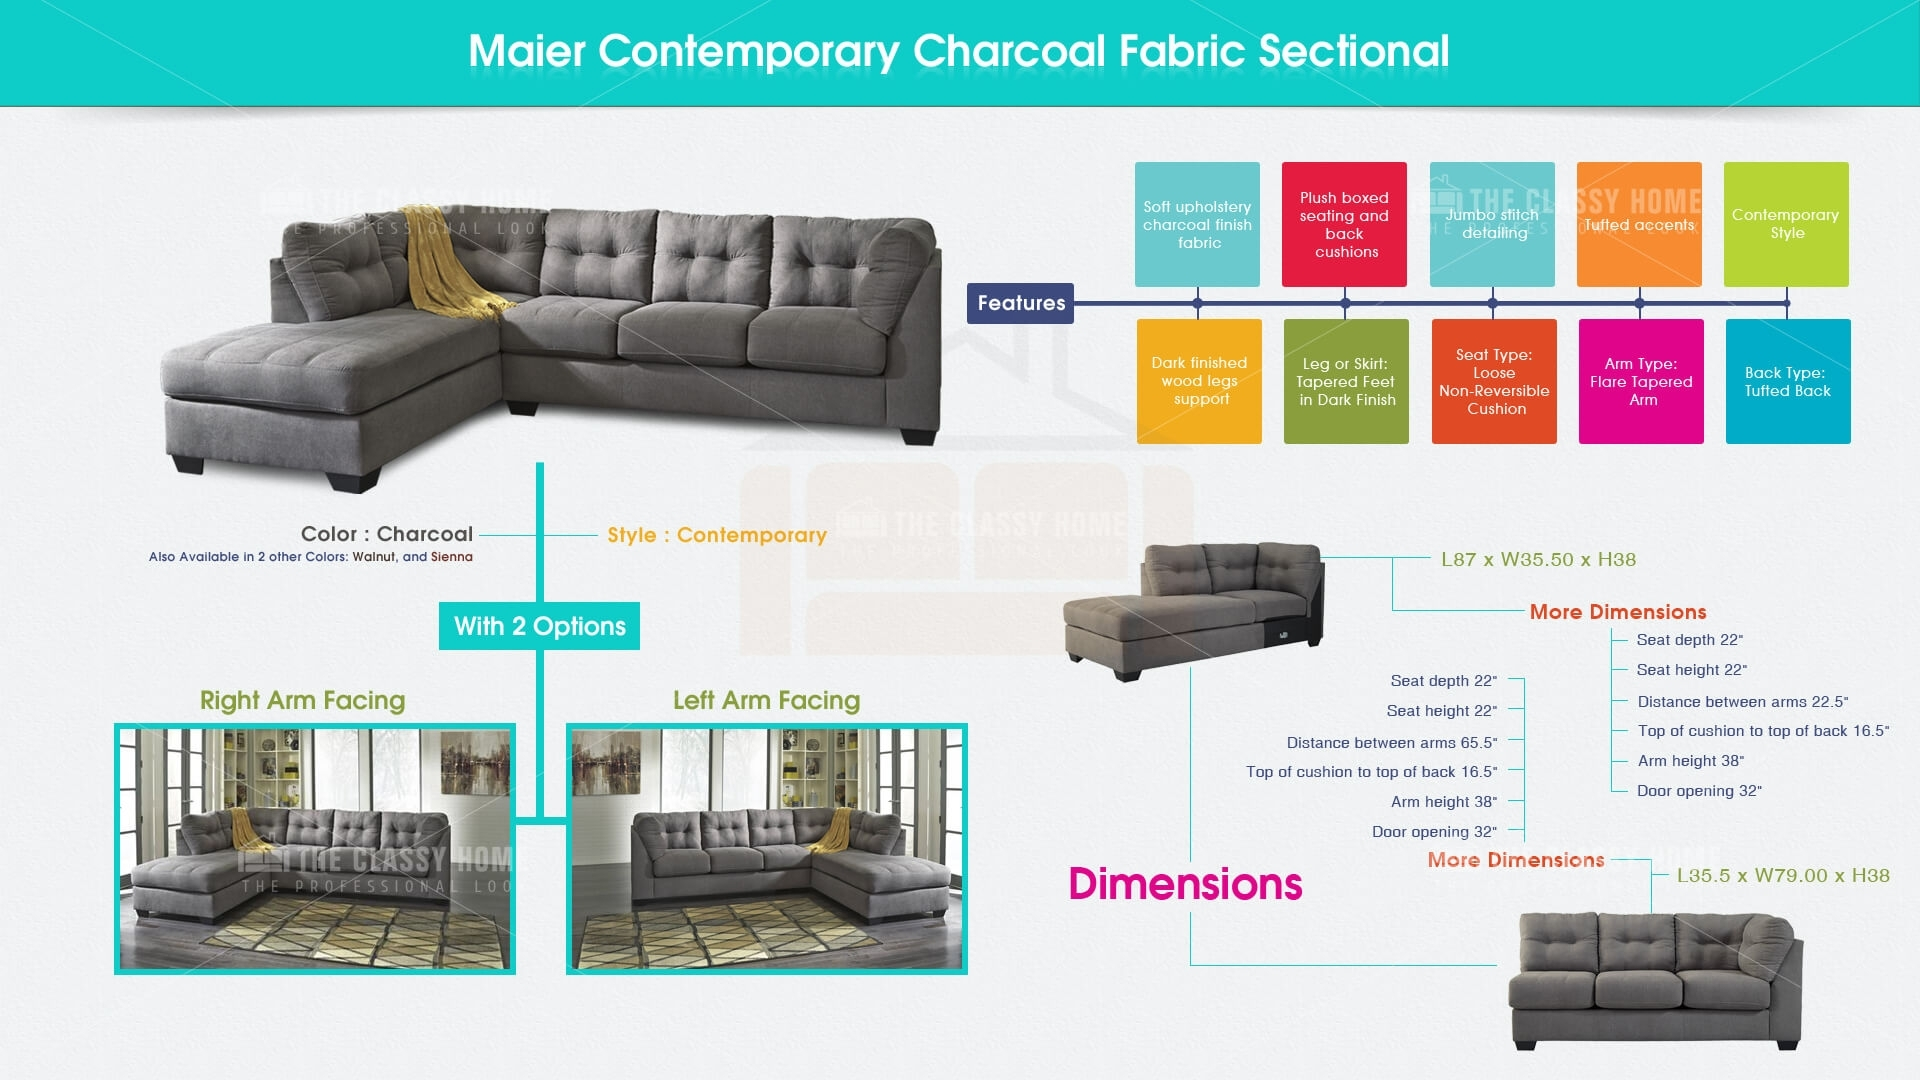 Ashley Furniture Maier Charcoal Raf Chaise Sectional | The Classy Home intended for Lucy Grey 2 Piece Sleeper Sectionals With Raf Chaise (Image 5 of 30)